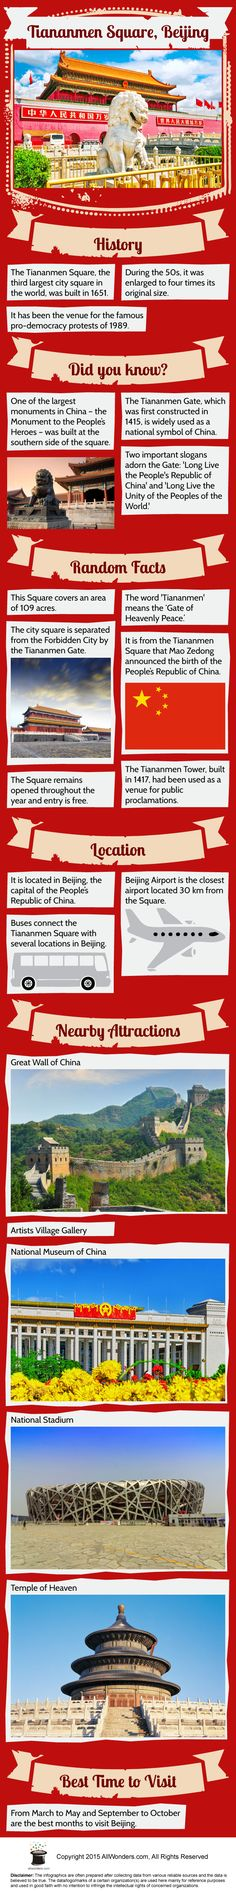 Infographic showing facts and information about Tiananmen Square. This gives a crisp information about Tiananmen Square.